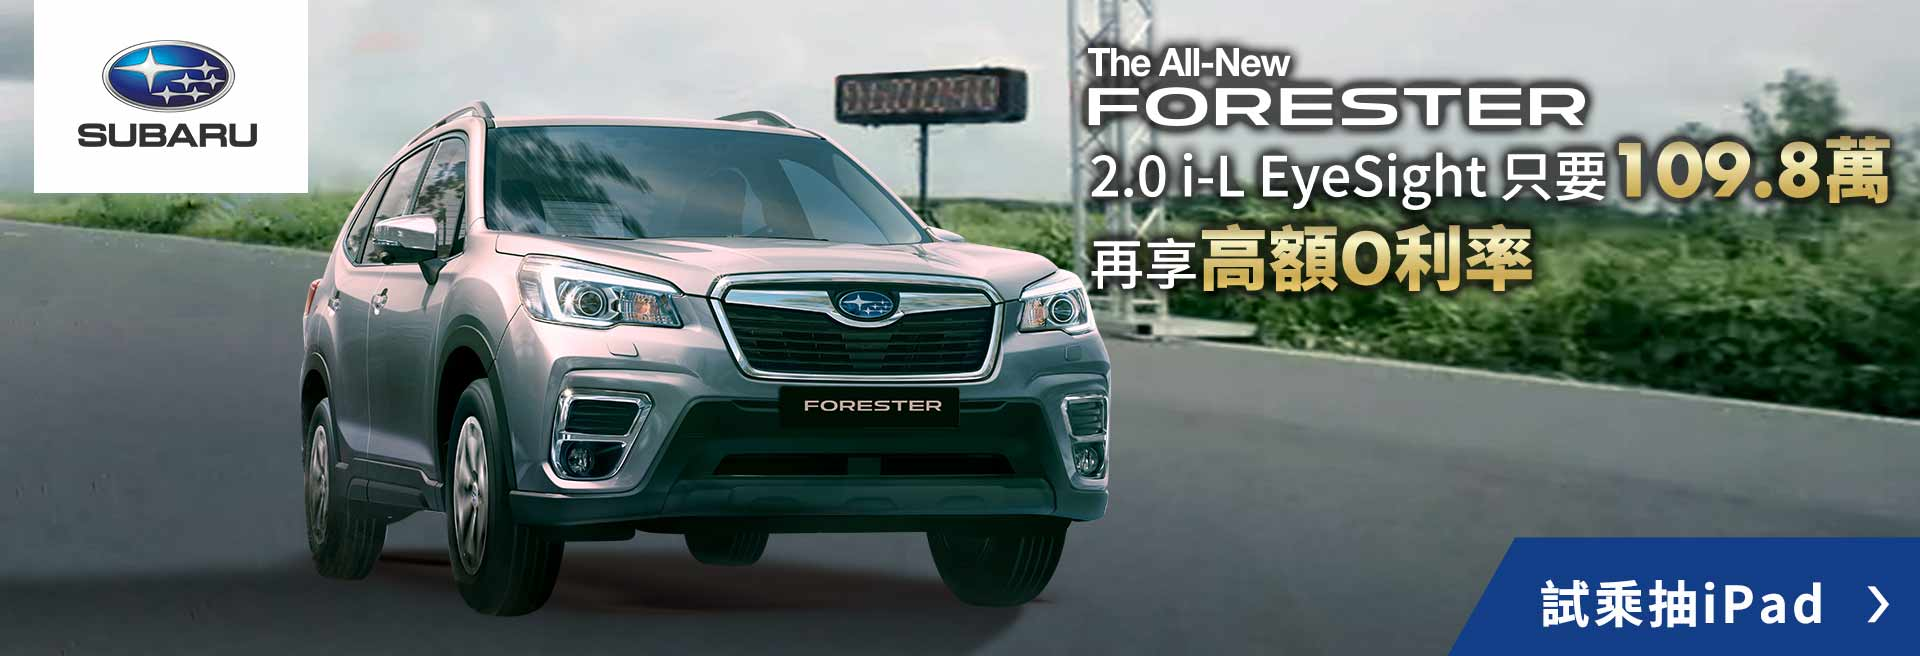 SUBARU Forester 2.0i-S EyeSight